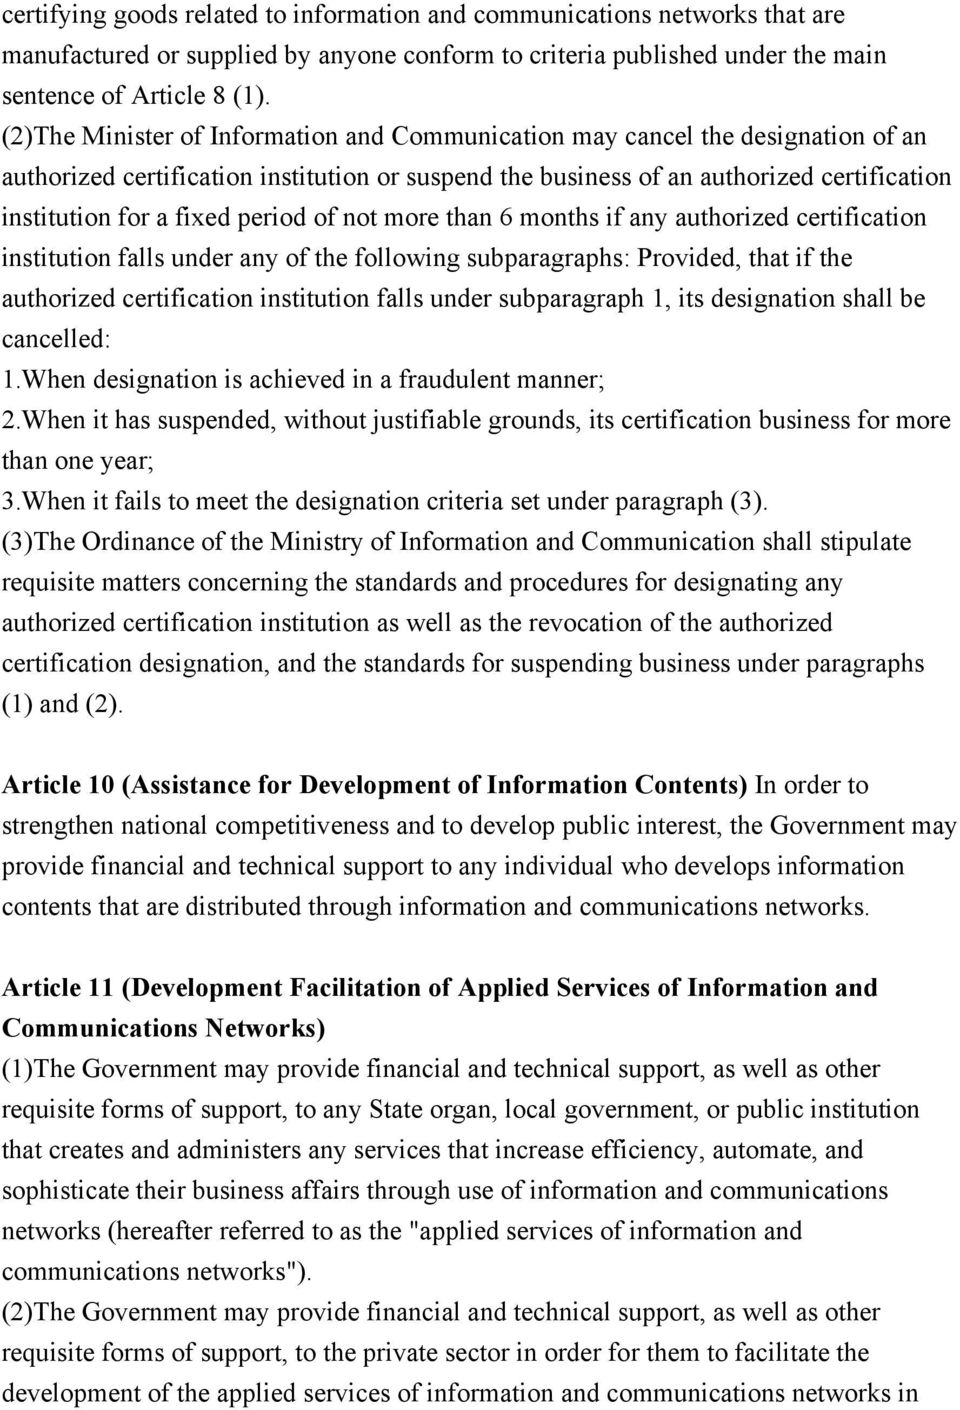 period of not more than 6 months if any authorized certification institution falls under any of the following subparagraphs: Provided, that if the authorized certification institution falls under